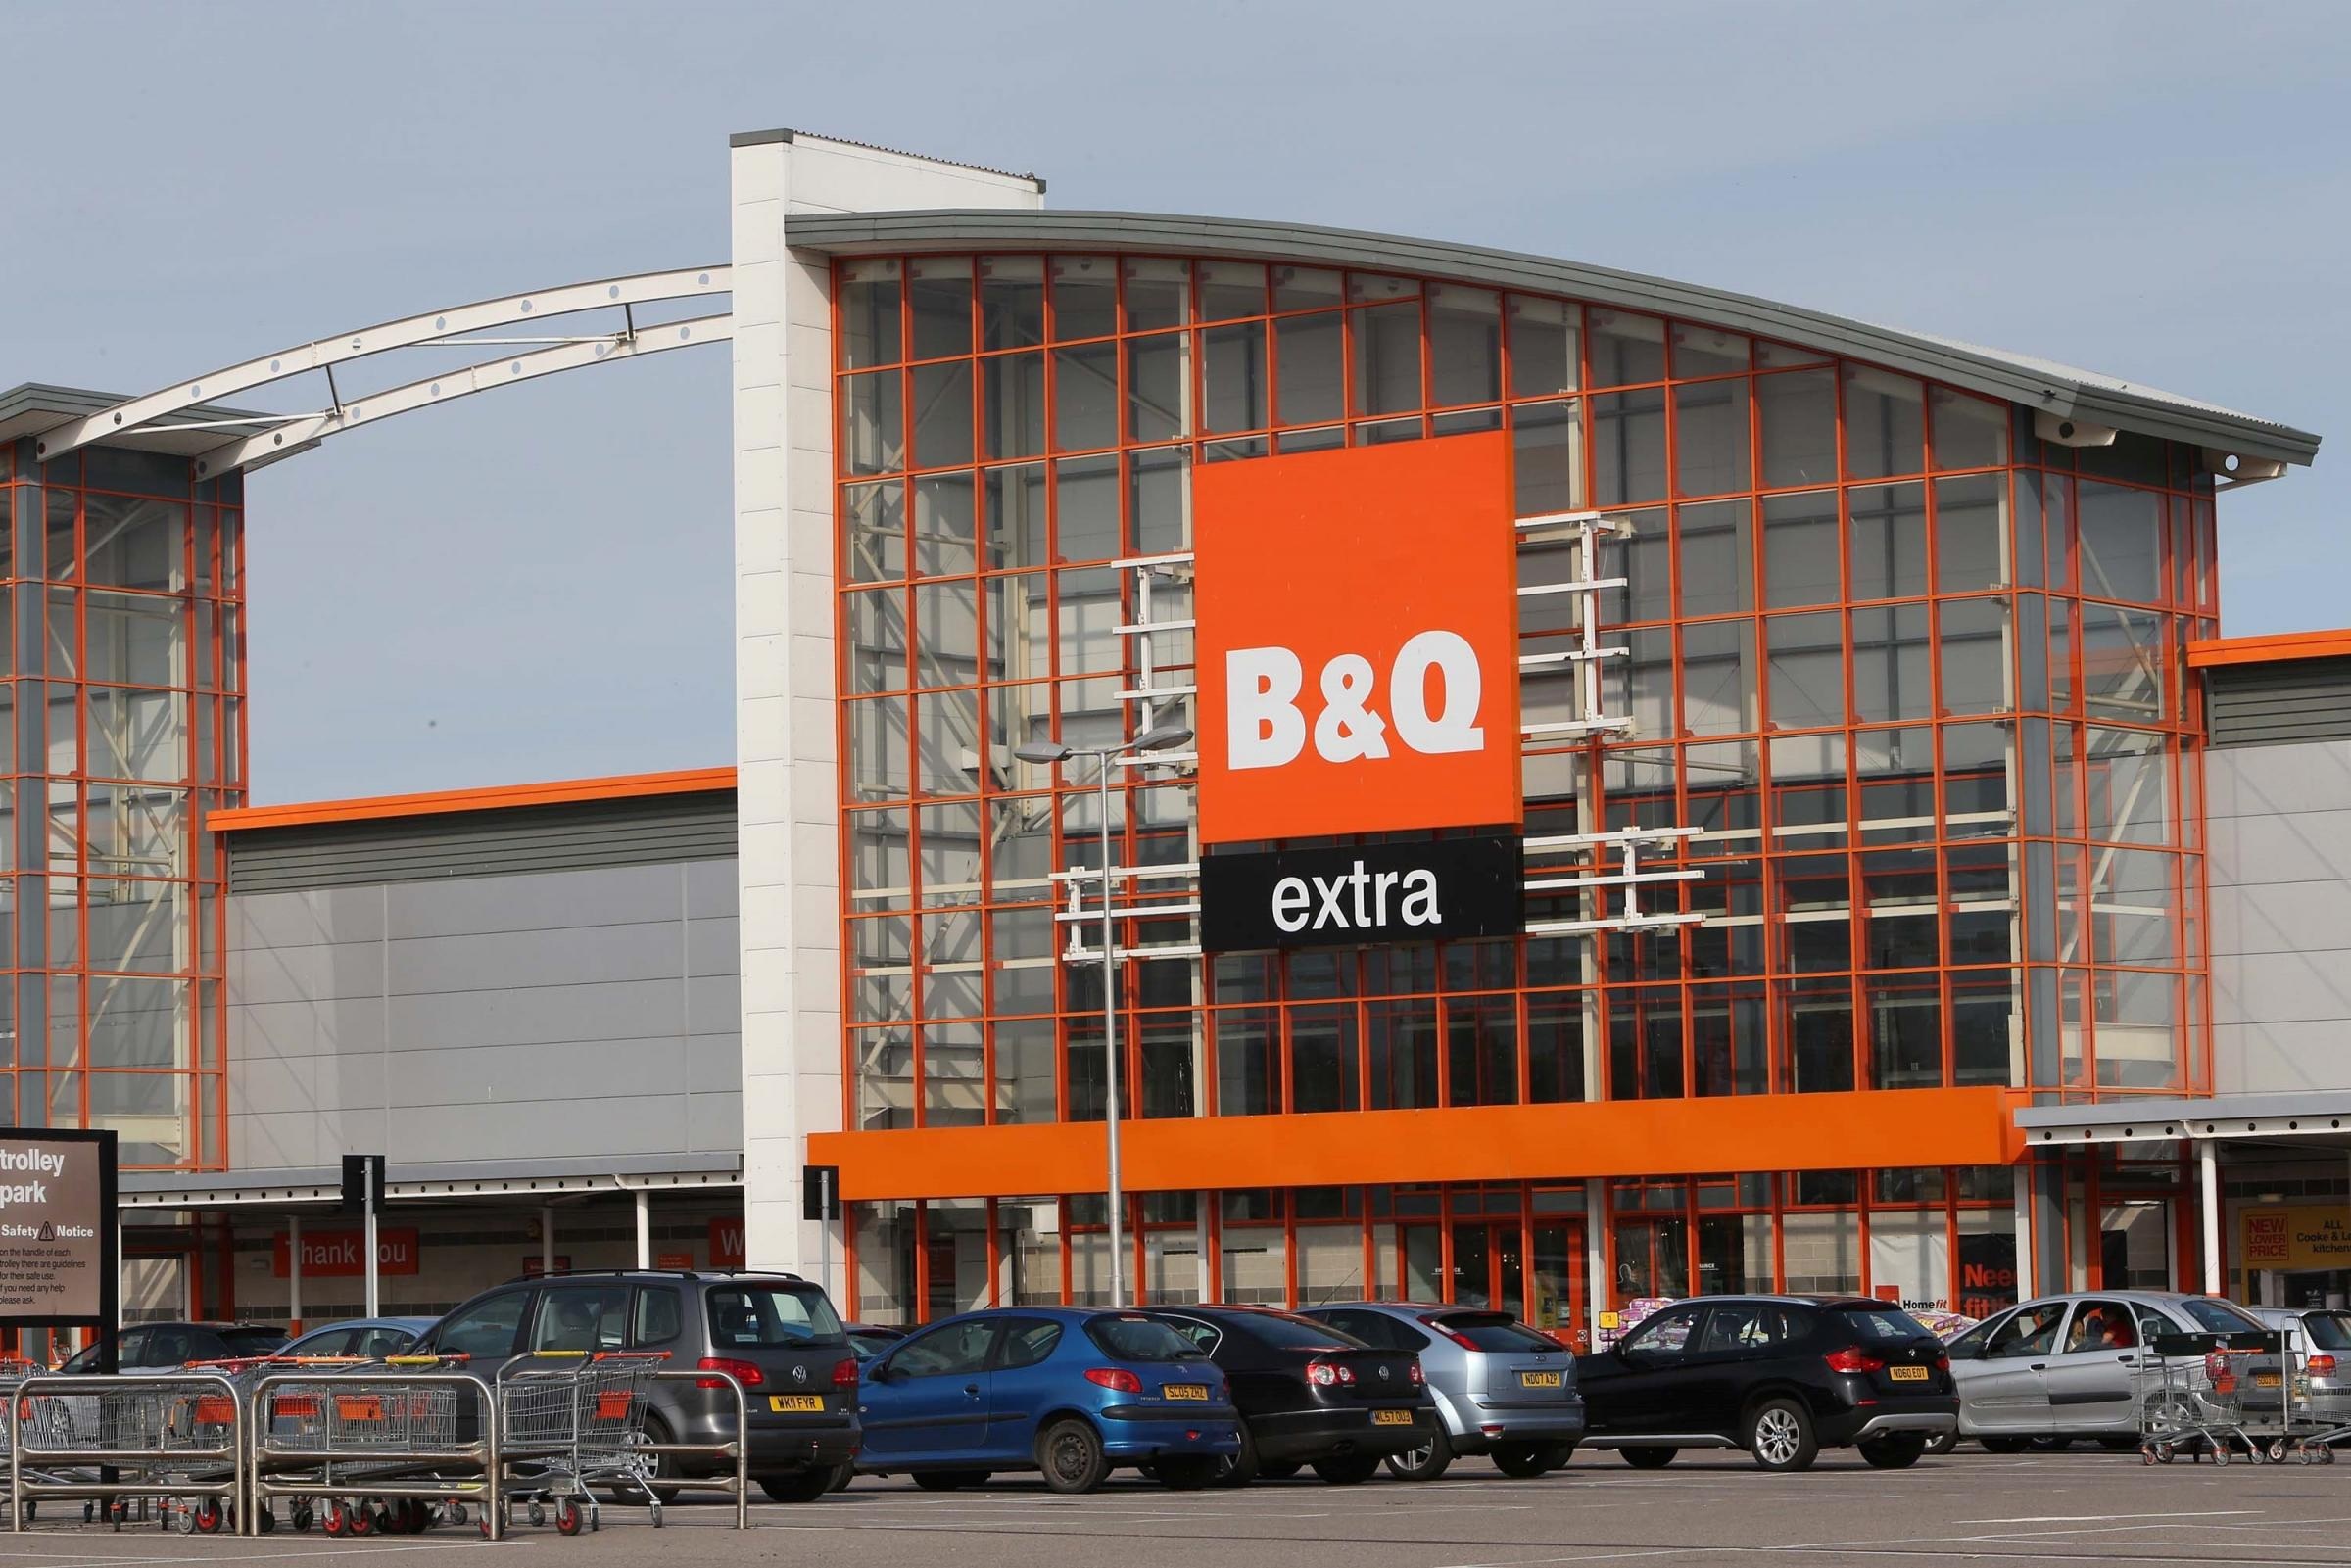 Go Outdoors Set To Create 50 Jobs At Store On Durham City Retail